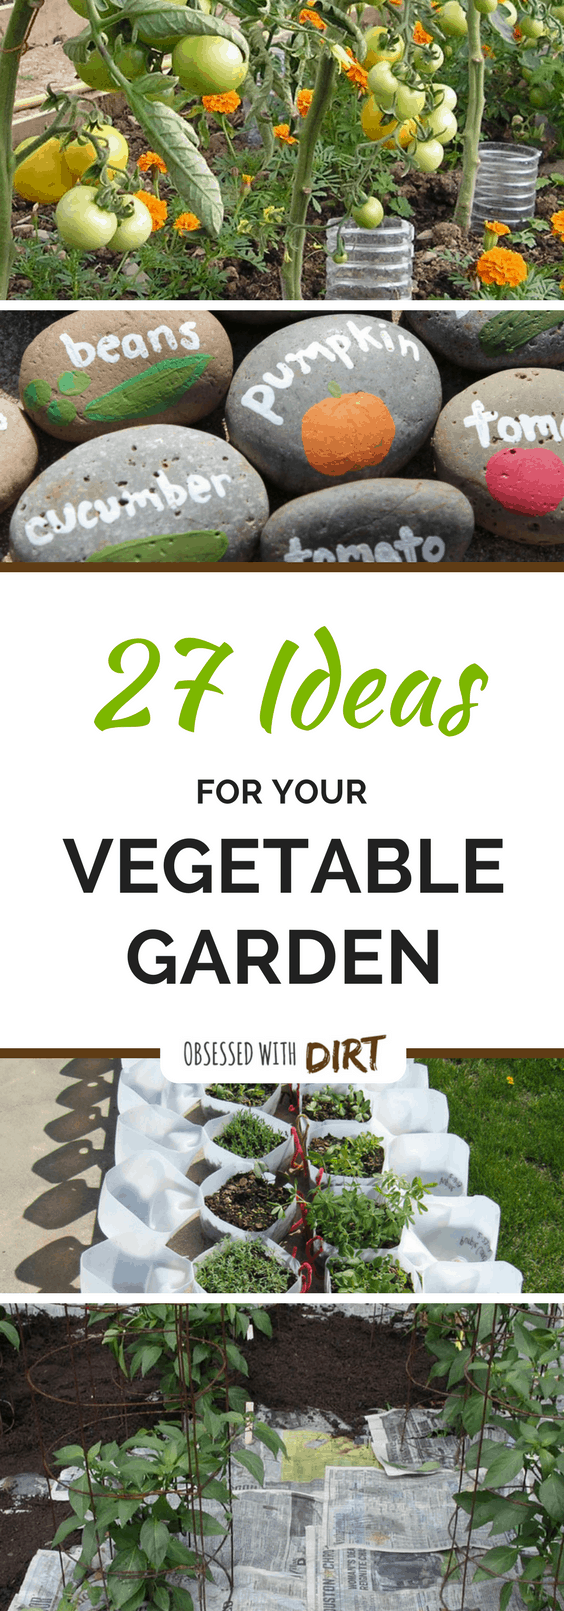 27 vegetable garden ideas to grow more food in small backyards for Food garden ideas